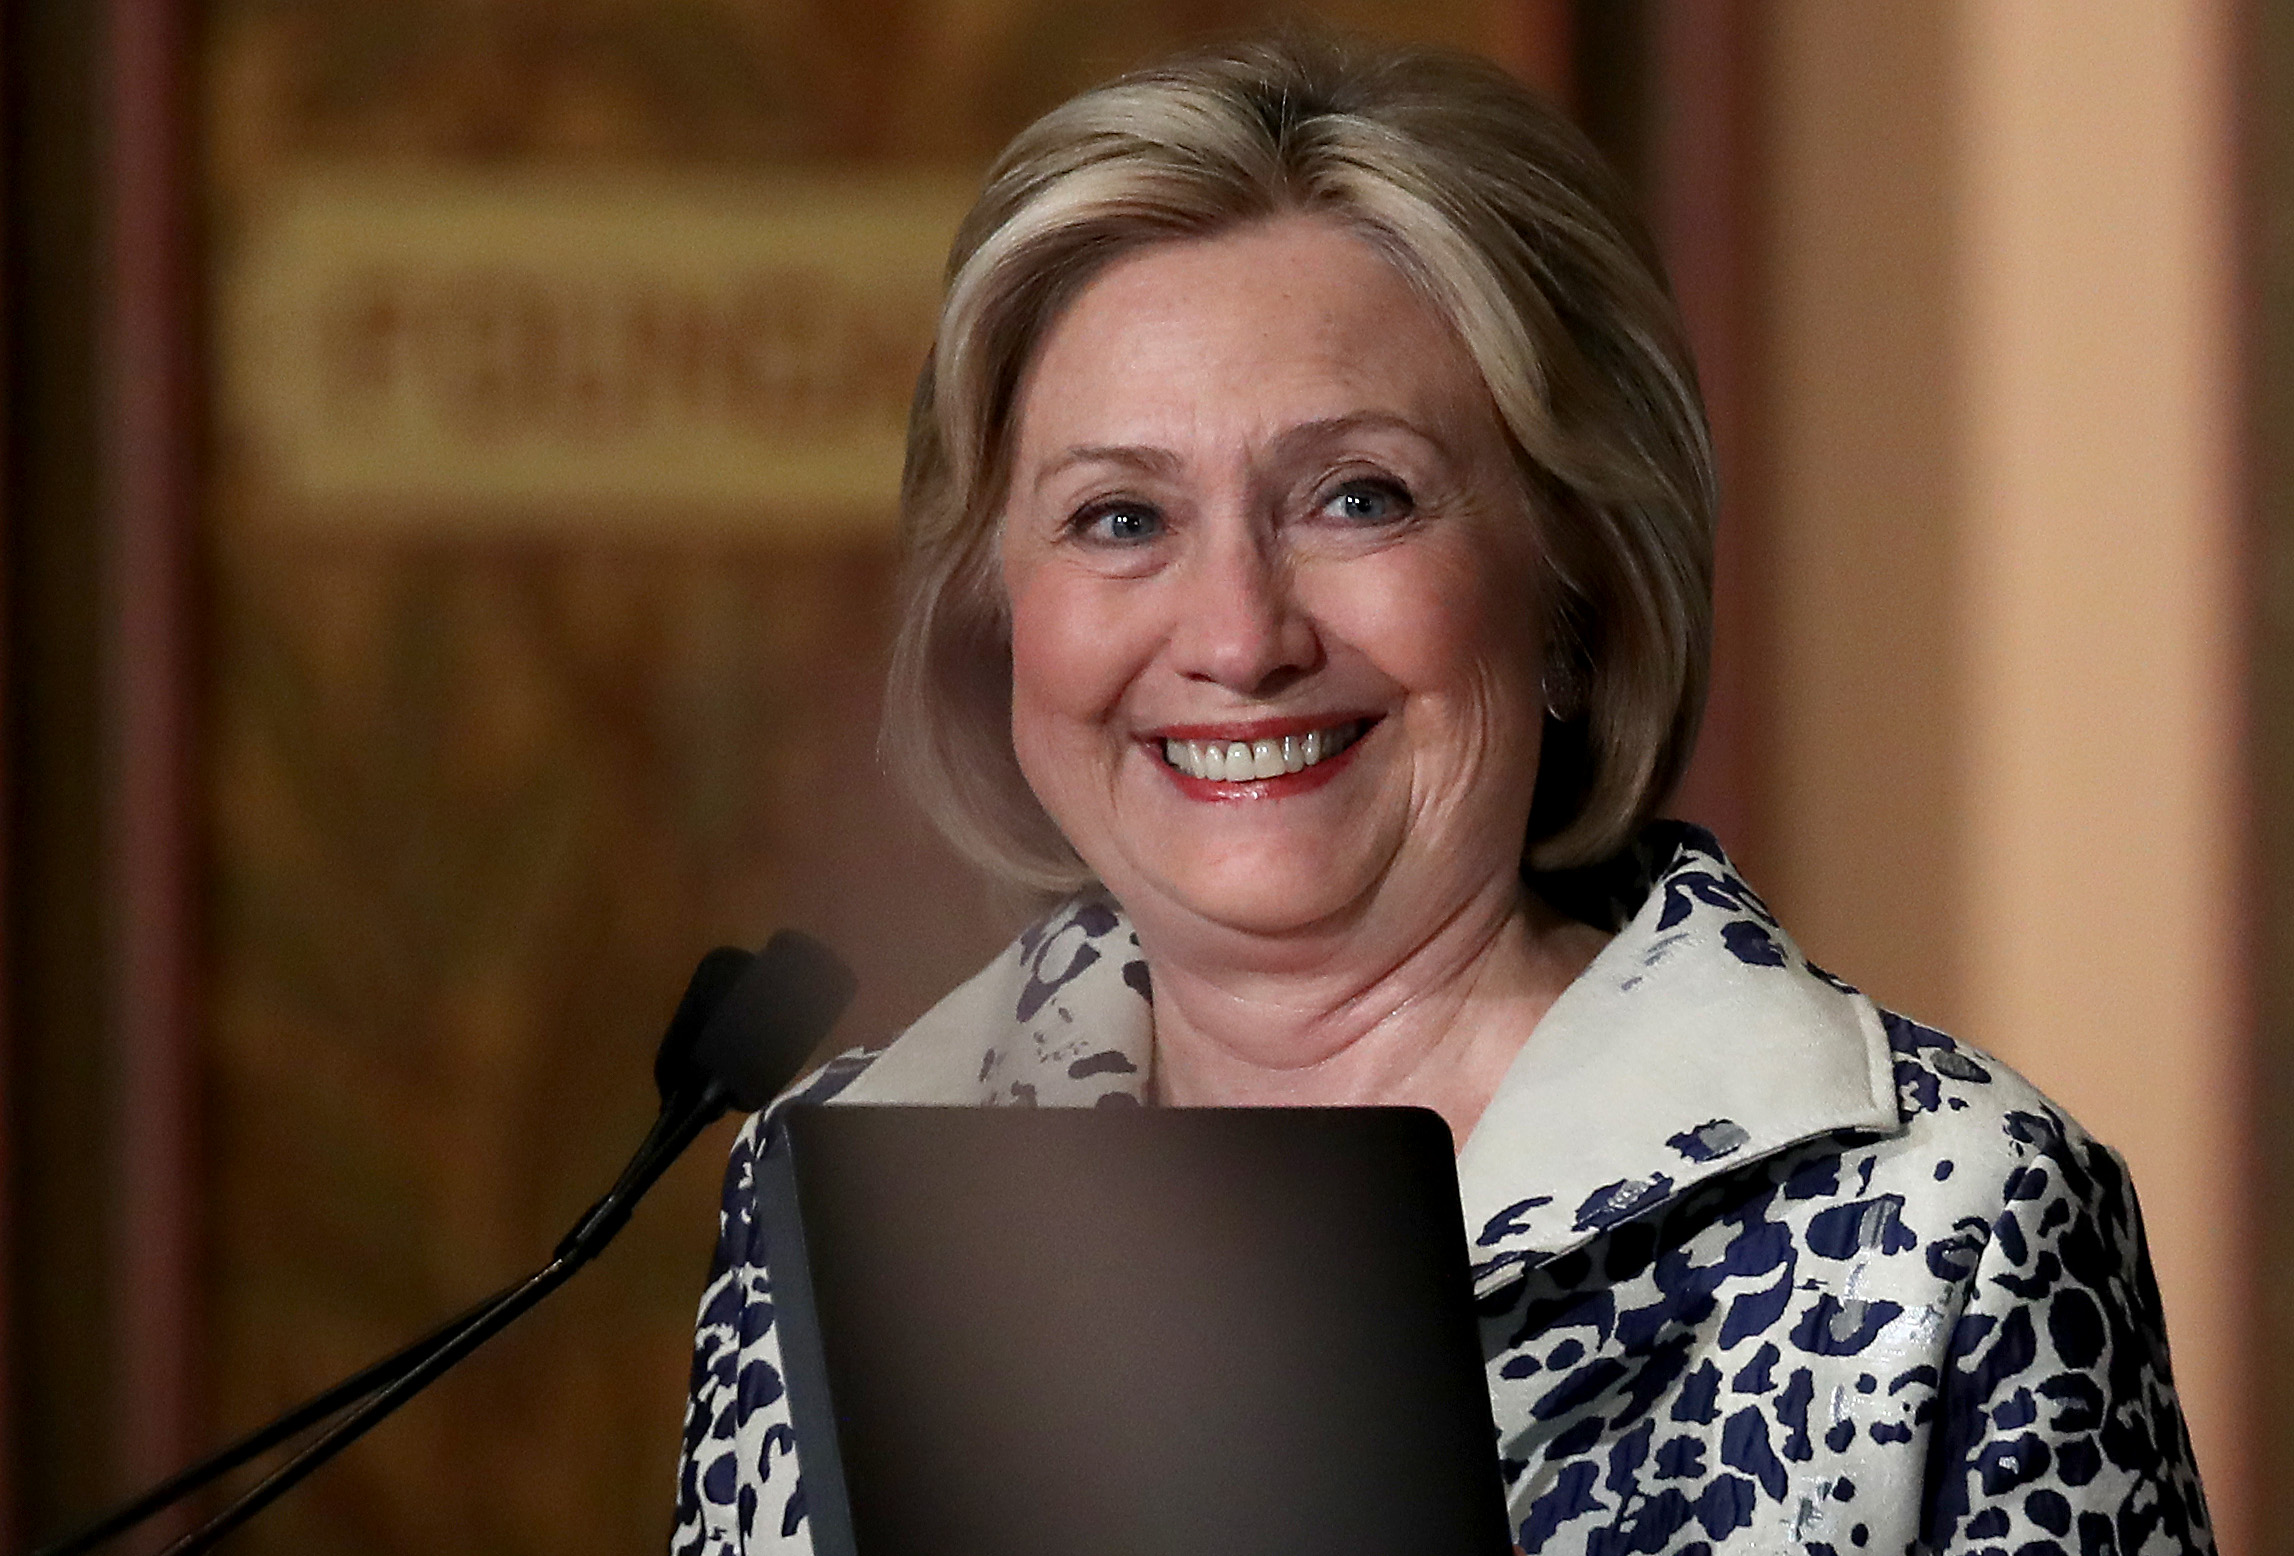 Hillary Clinton Thinking About Running for President Again: Reports